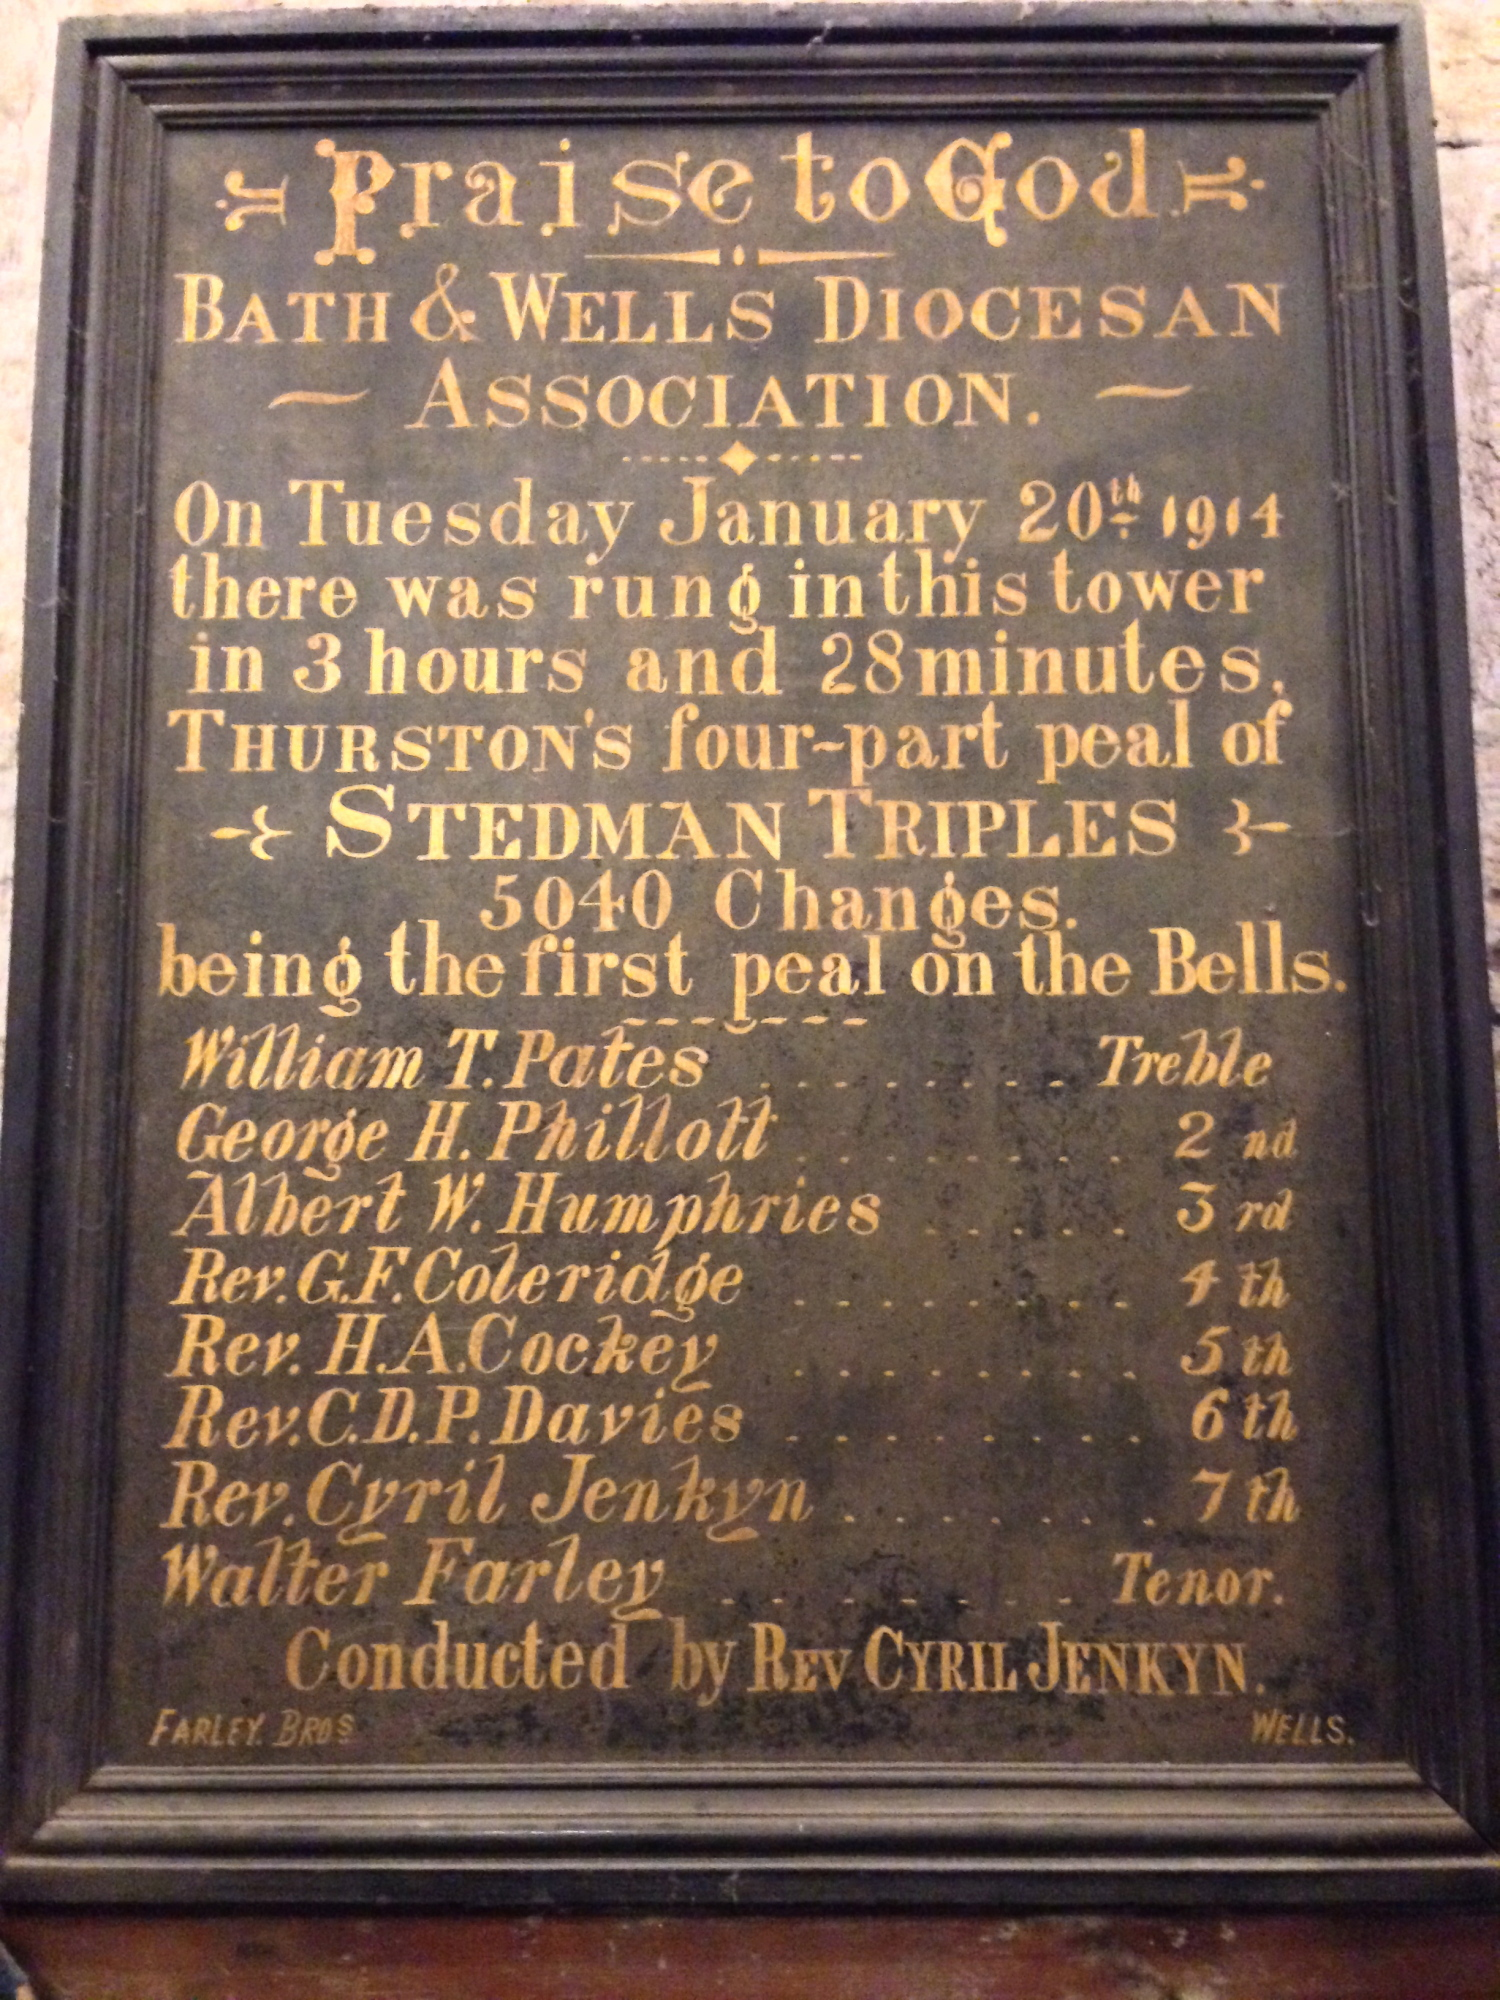 Peal board of the first peal on the bells.